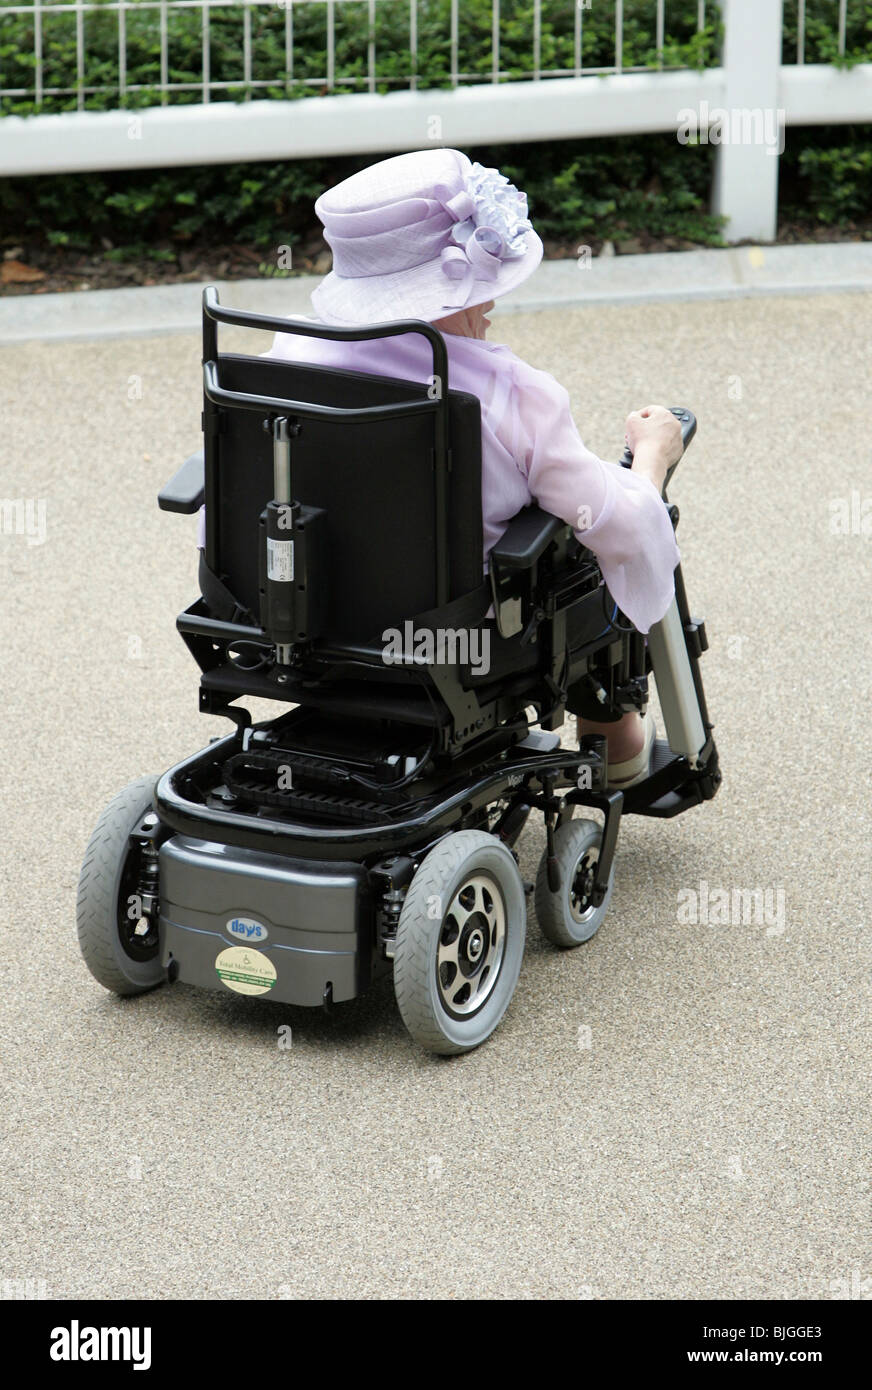 Woman on electric wheelchair at the Royal Ascot horse races, Great Britain - Stock Image